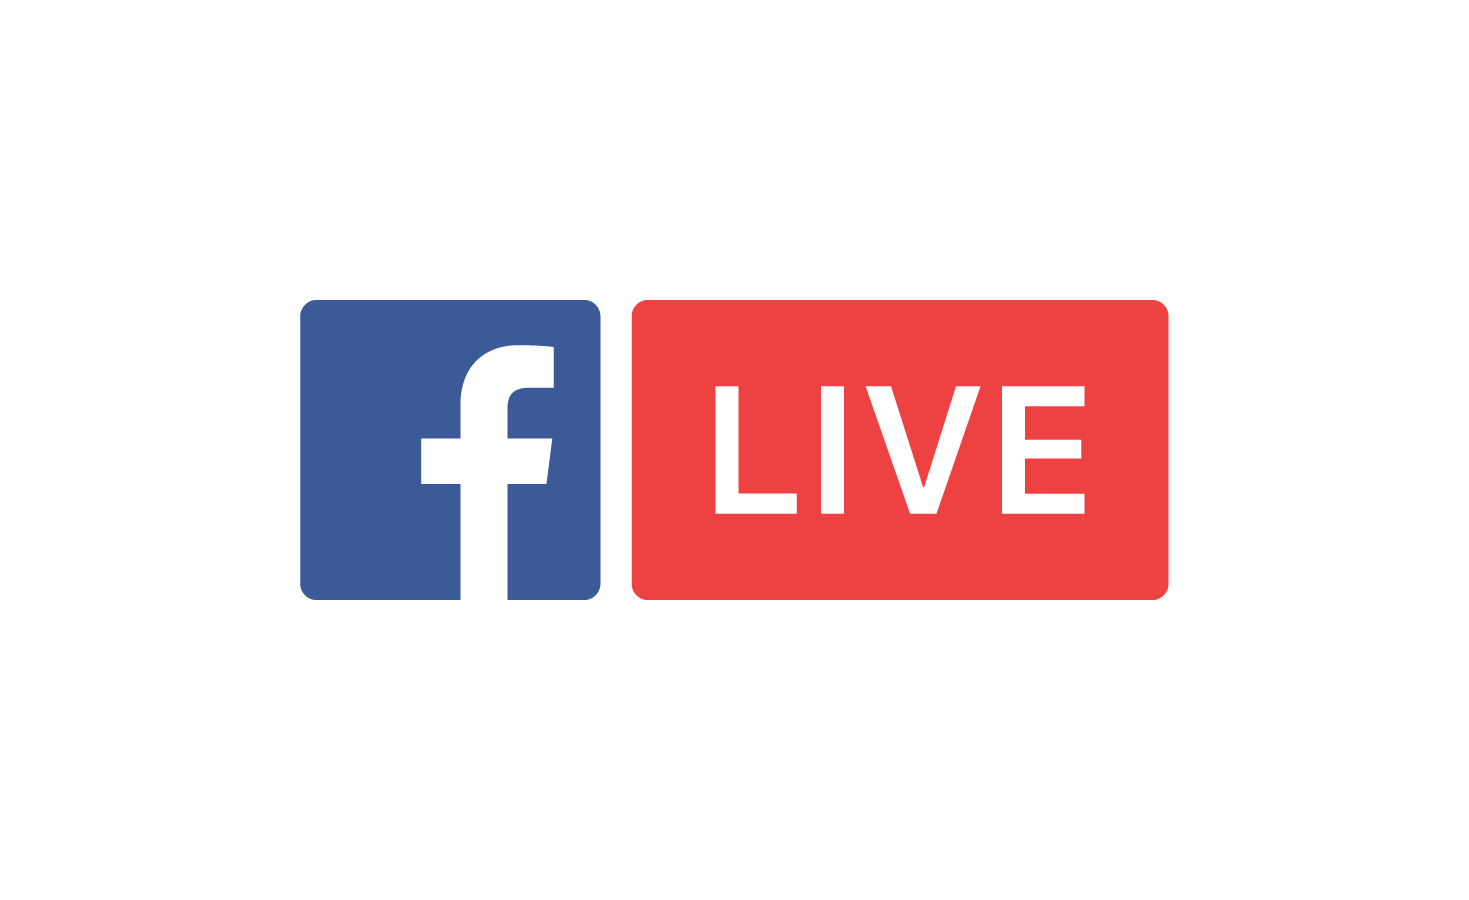 Streaming Started Media Button Get Facebook, Live PNG Image